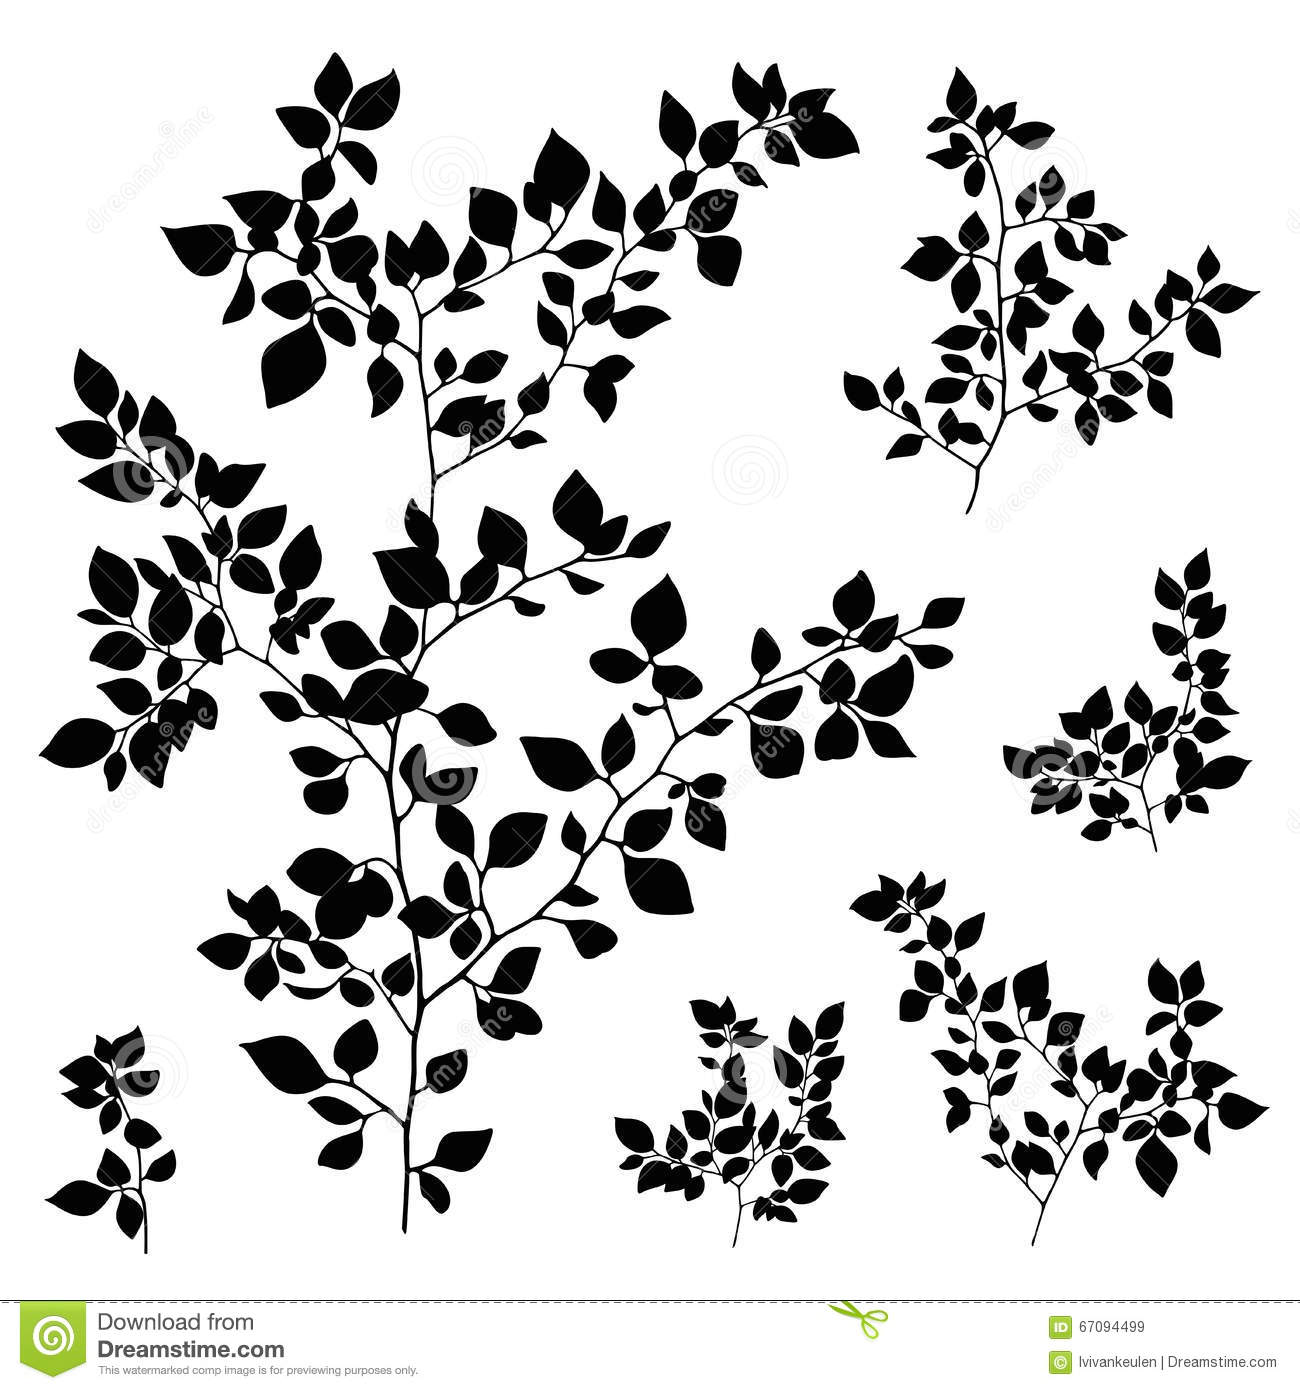 Tree Branches With Leaves Silhouette Vector Illustration